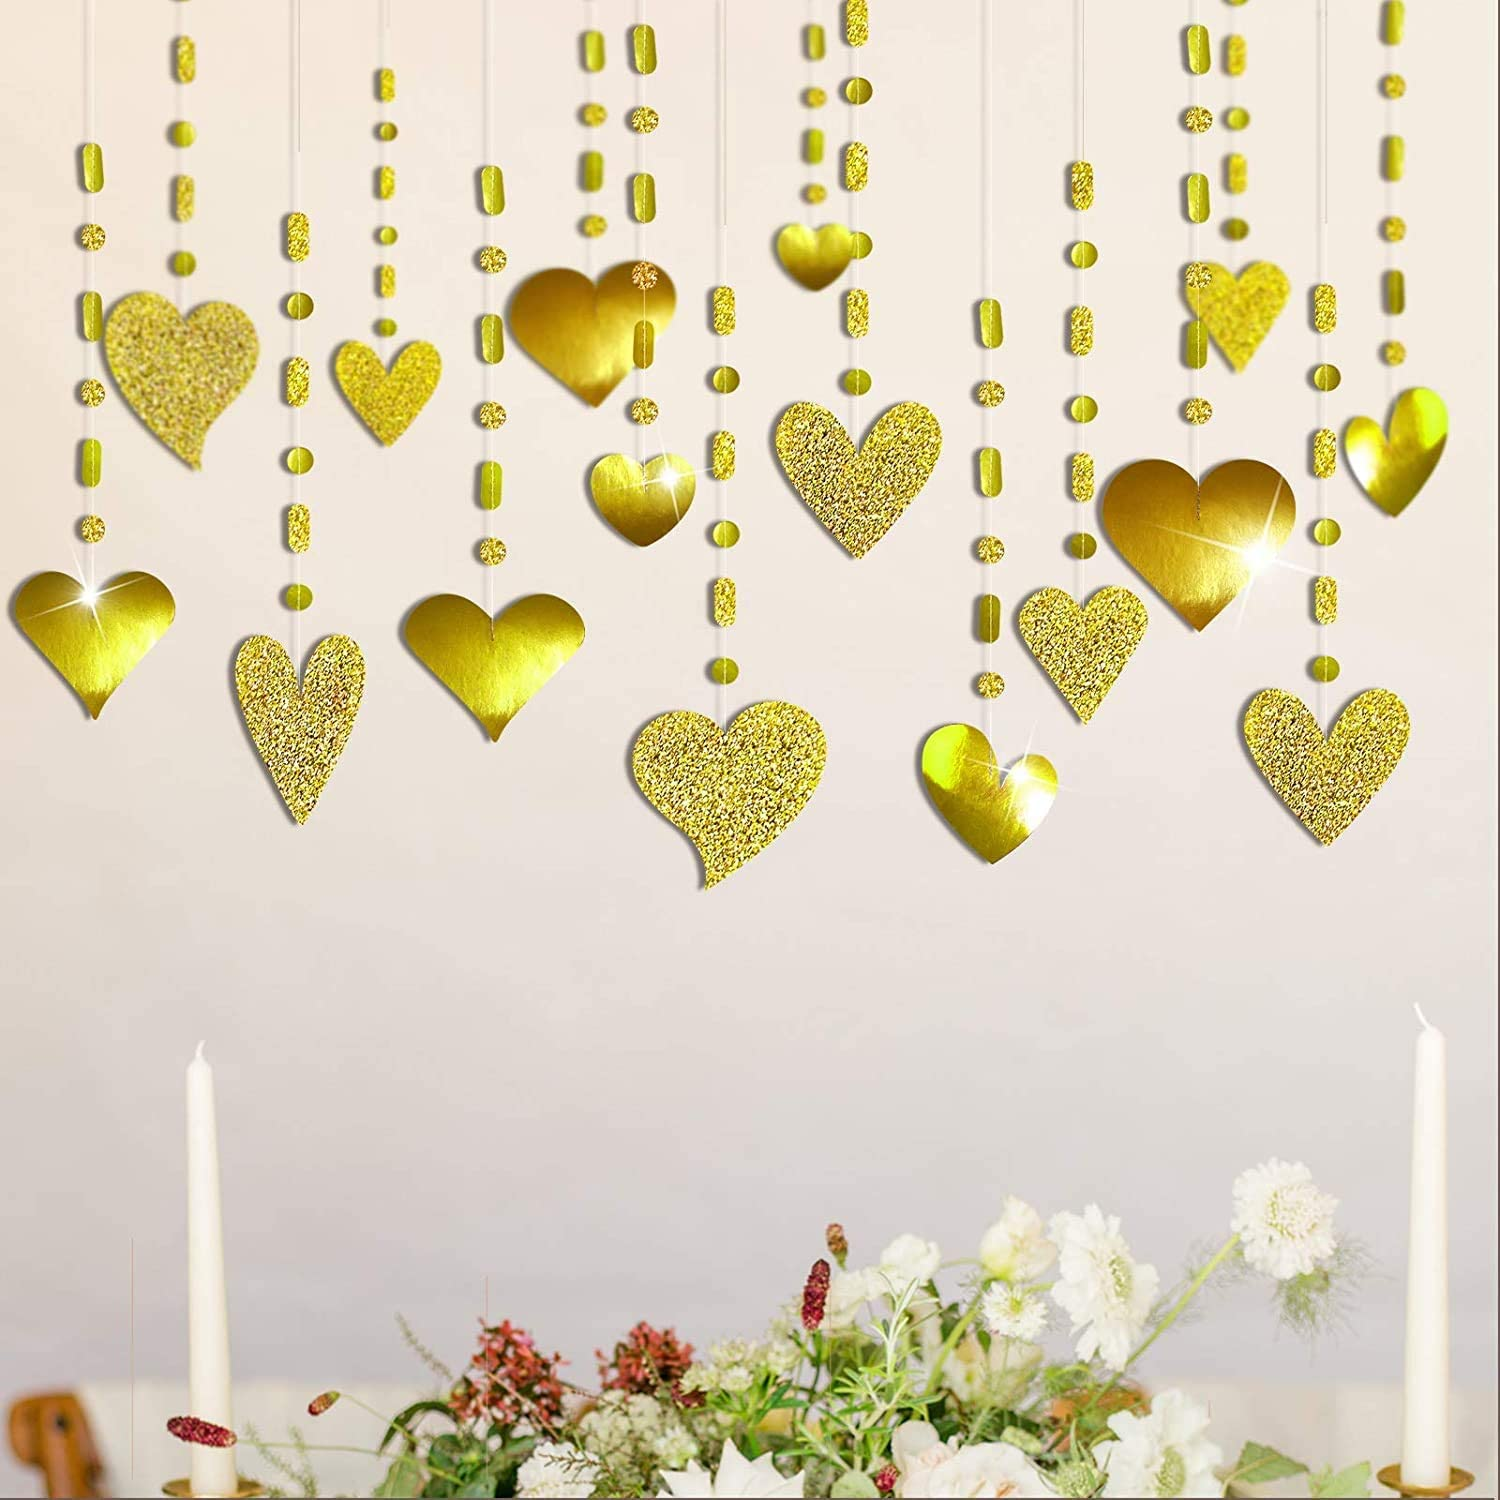 Glitter Gold Heart Garland Decorations Hanging Heart Streamer Banner Backdrop for Valentines Mother's Day Decor Wedding Anniversary Bachelorette Engagement Baby Shower Birthday Party Supplies